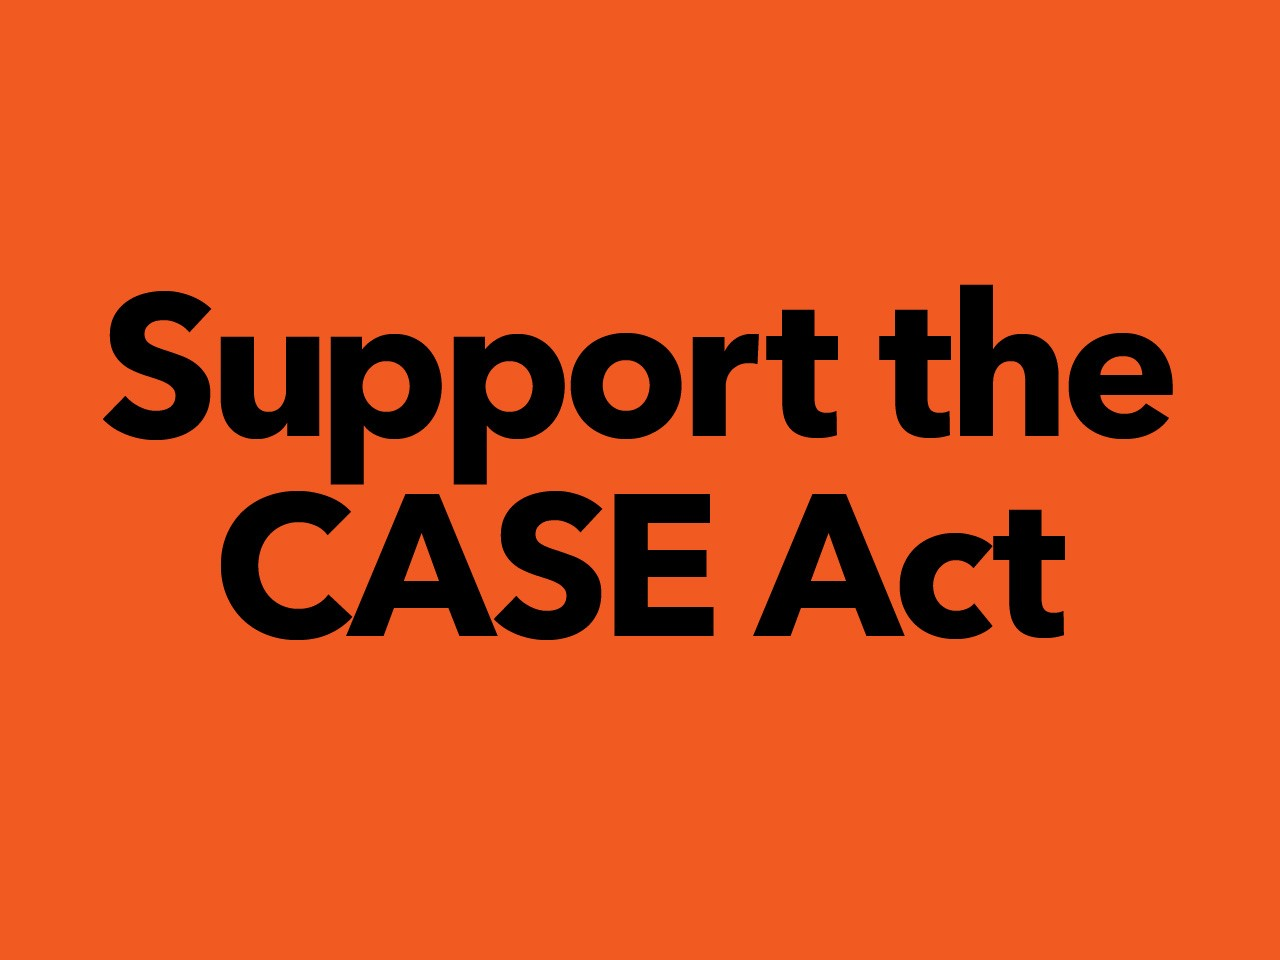 CASE Act-ion: Join the CASE Act Clicks Campaign!